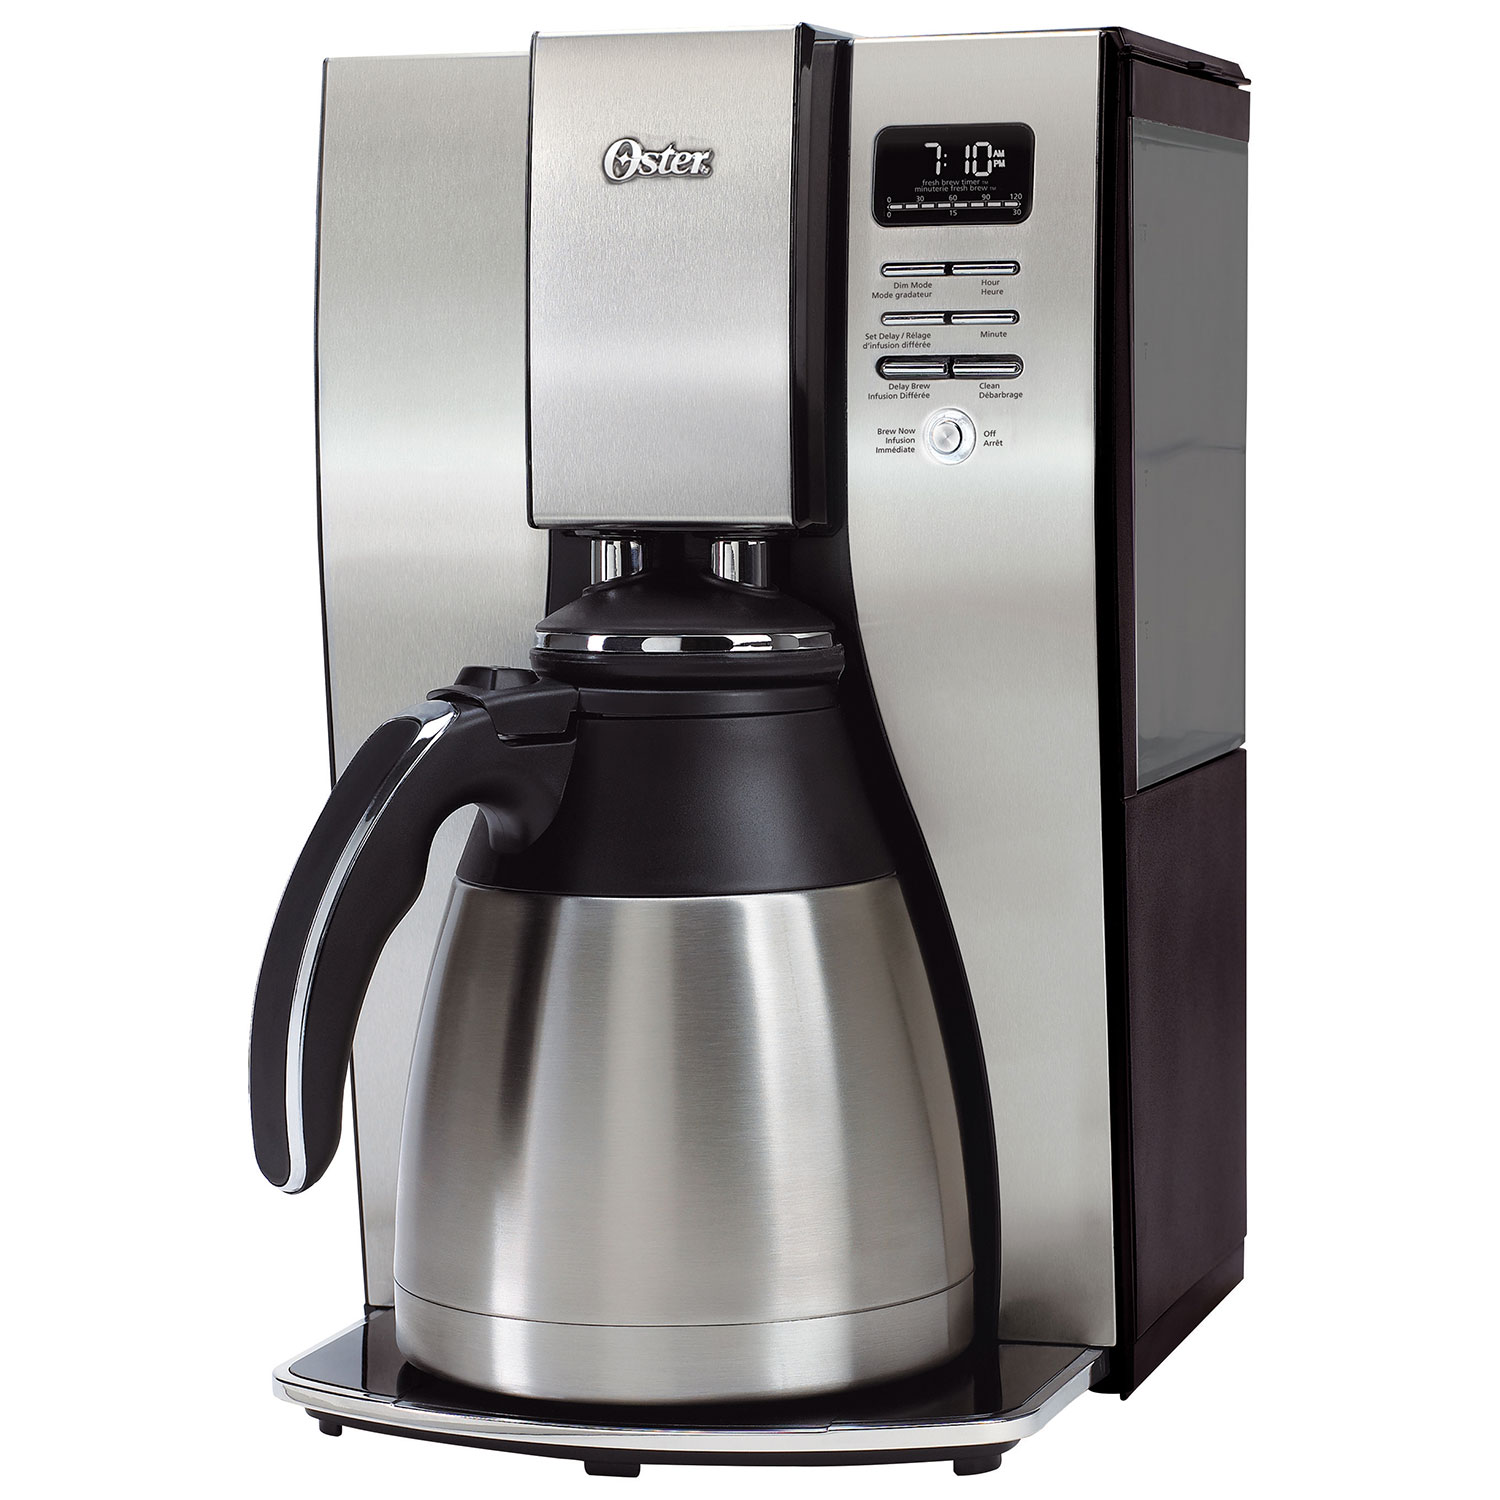 Oster Thermal 10 Cup Coffee Maker Bvstpstx95 033 Stainless Steel